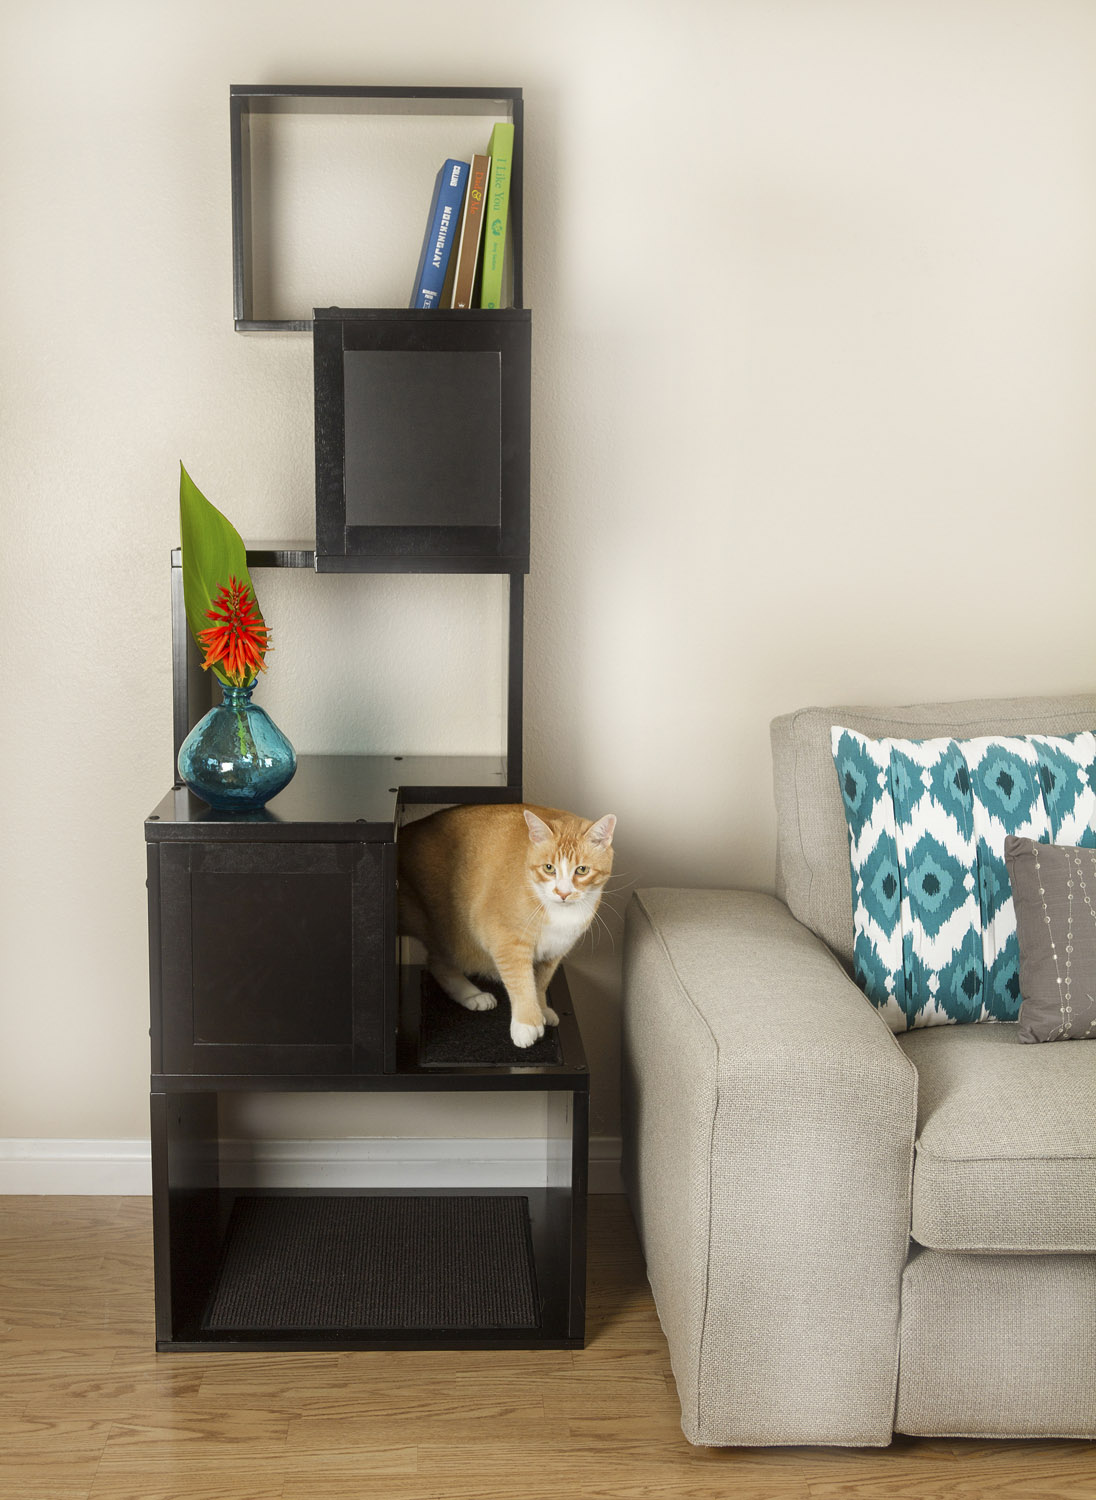 spoil your lovely cats with contemporary cat furniture  homesfeed - sebastian cat tree or contemporary cat furniture in black finishingdecorated next to the grey sofa